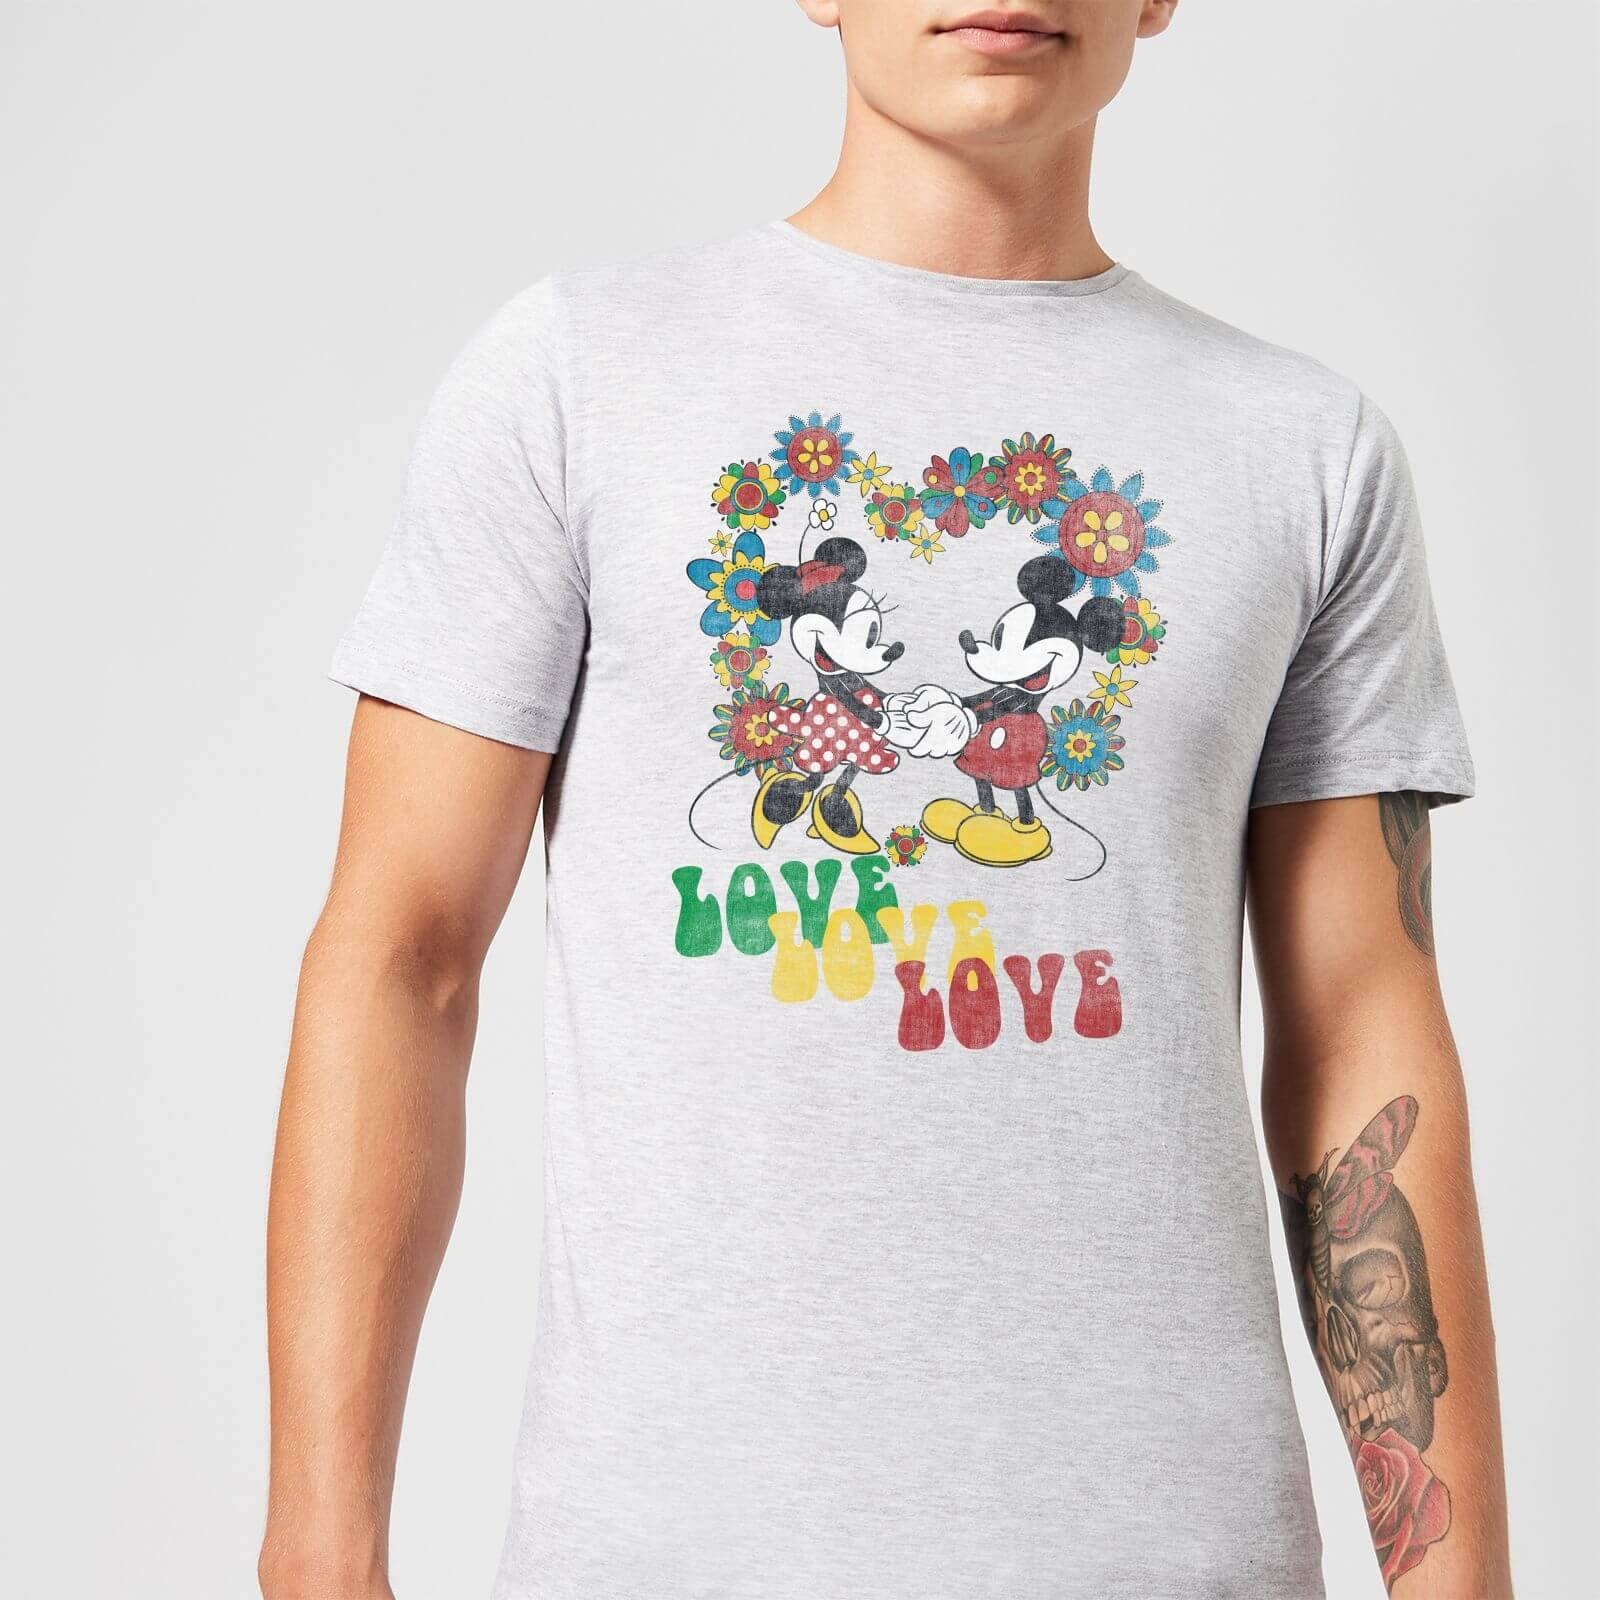 Disney Mickey Mouse Hippie Love T-Shirt - Grey - XXL - Black